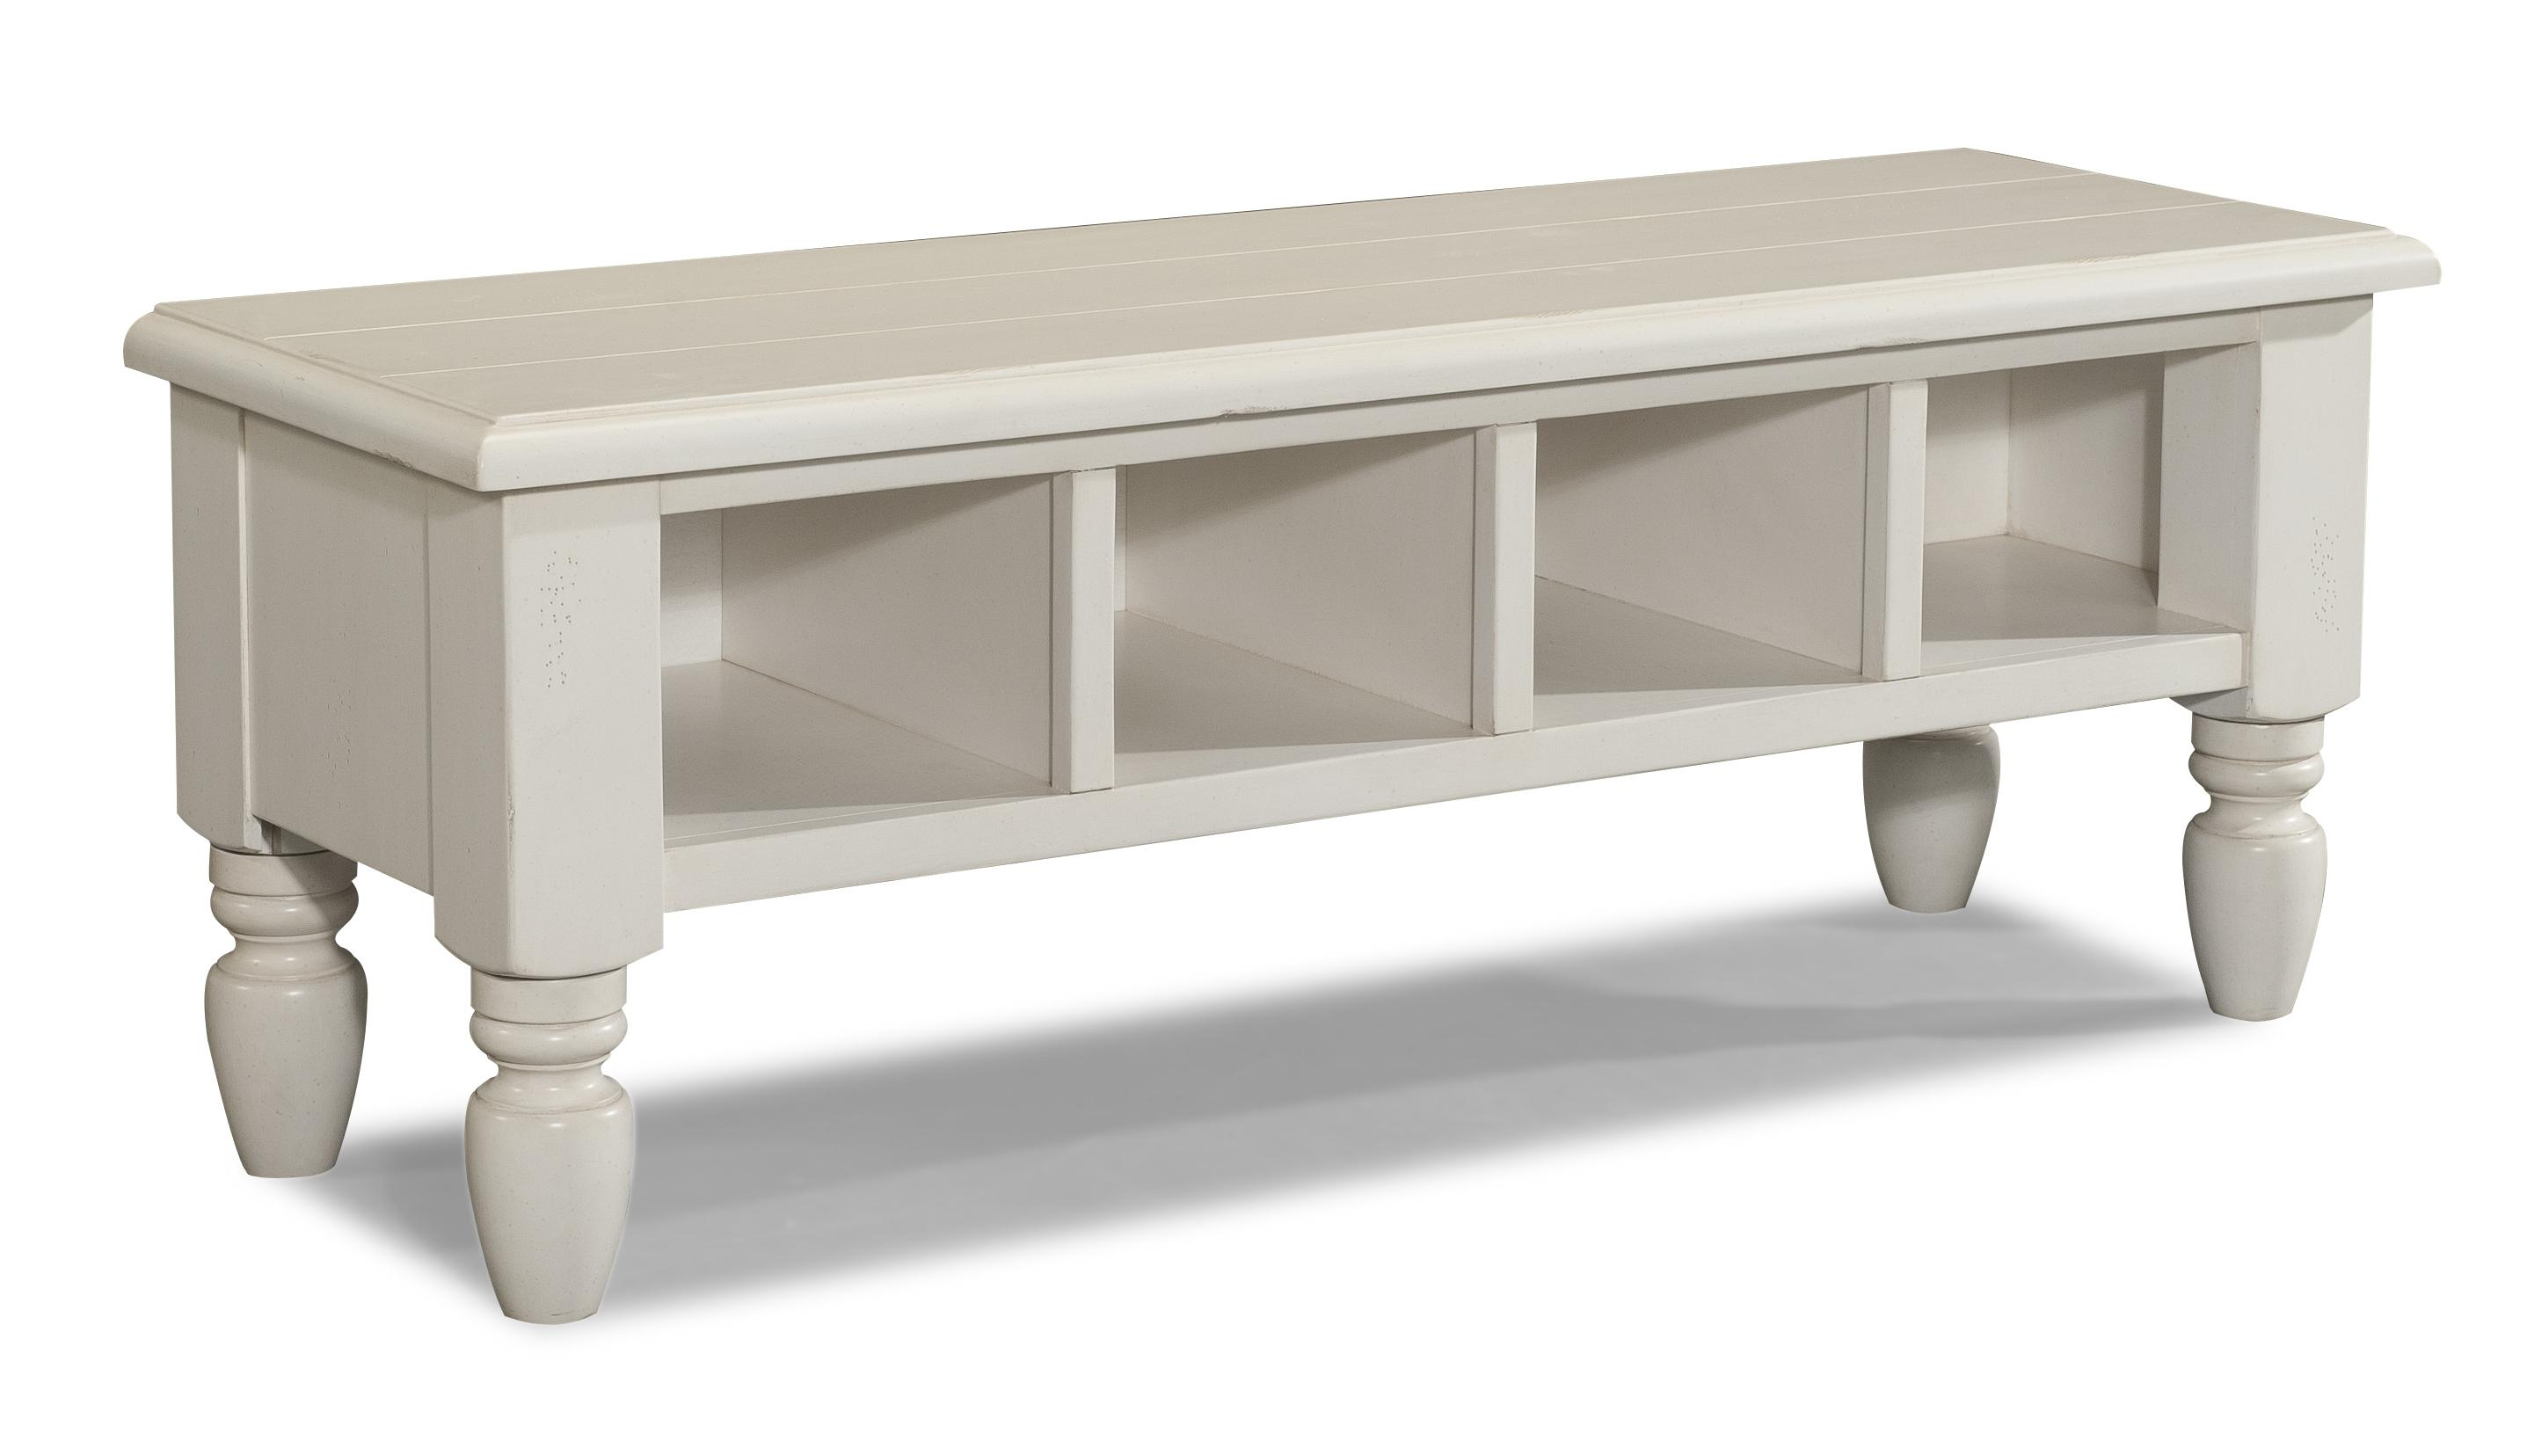 Easton Collection Sea Breeze Carolina Shores-White Wooden Bench - Item Number: 424-824 BENCH